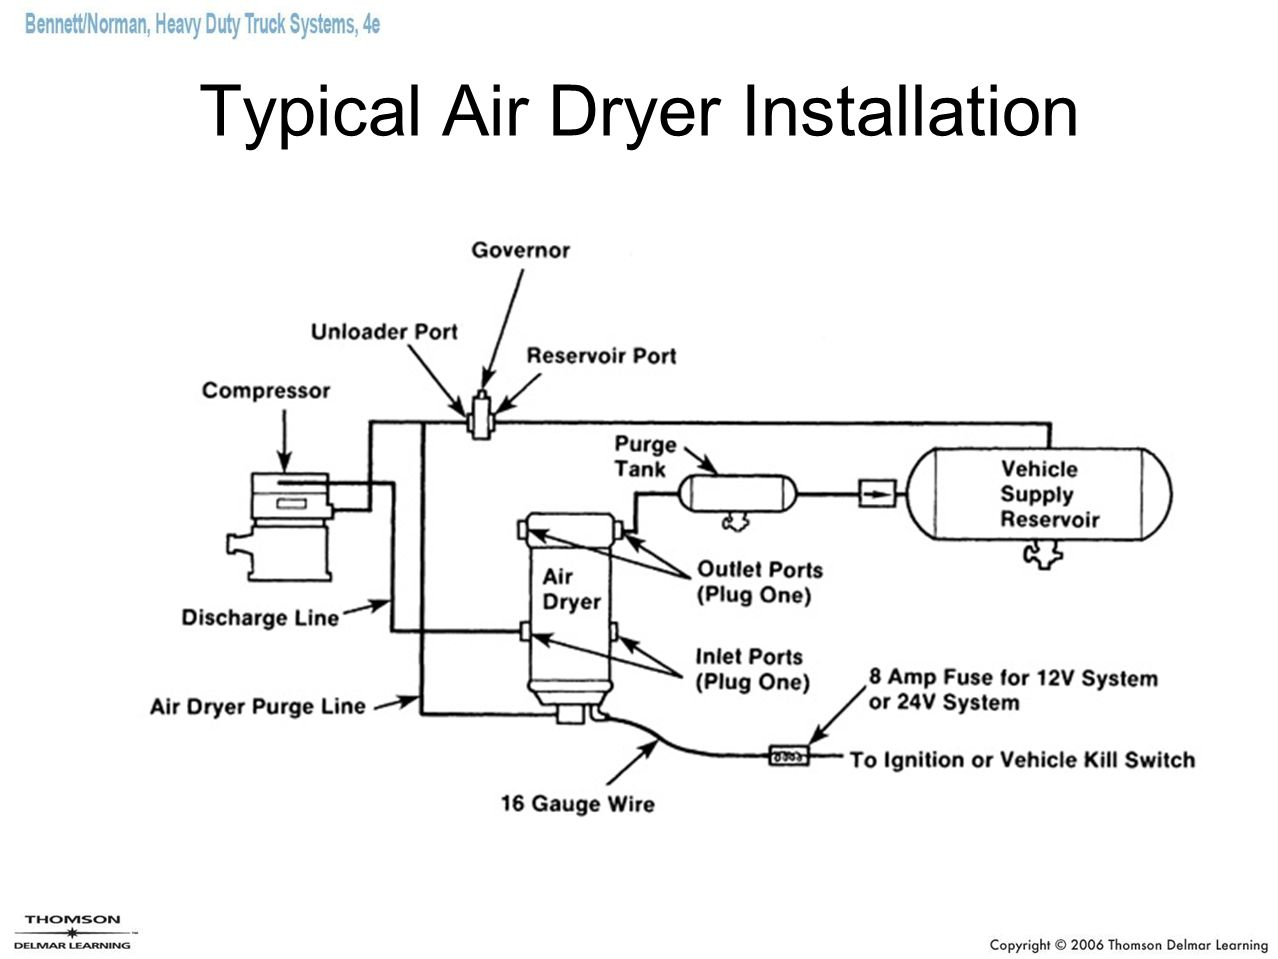 Chapter 28 Truck Brake Systems Ppt Video Online Download Typical Wiring Diagrams Evaporator 15 Air Dryer Installation